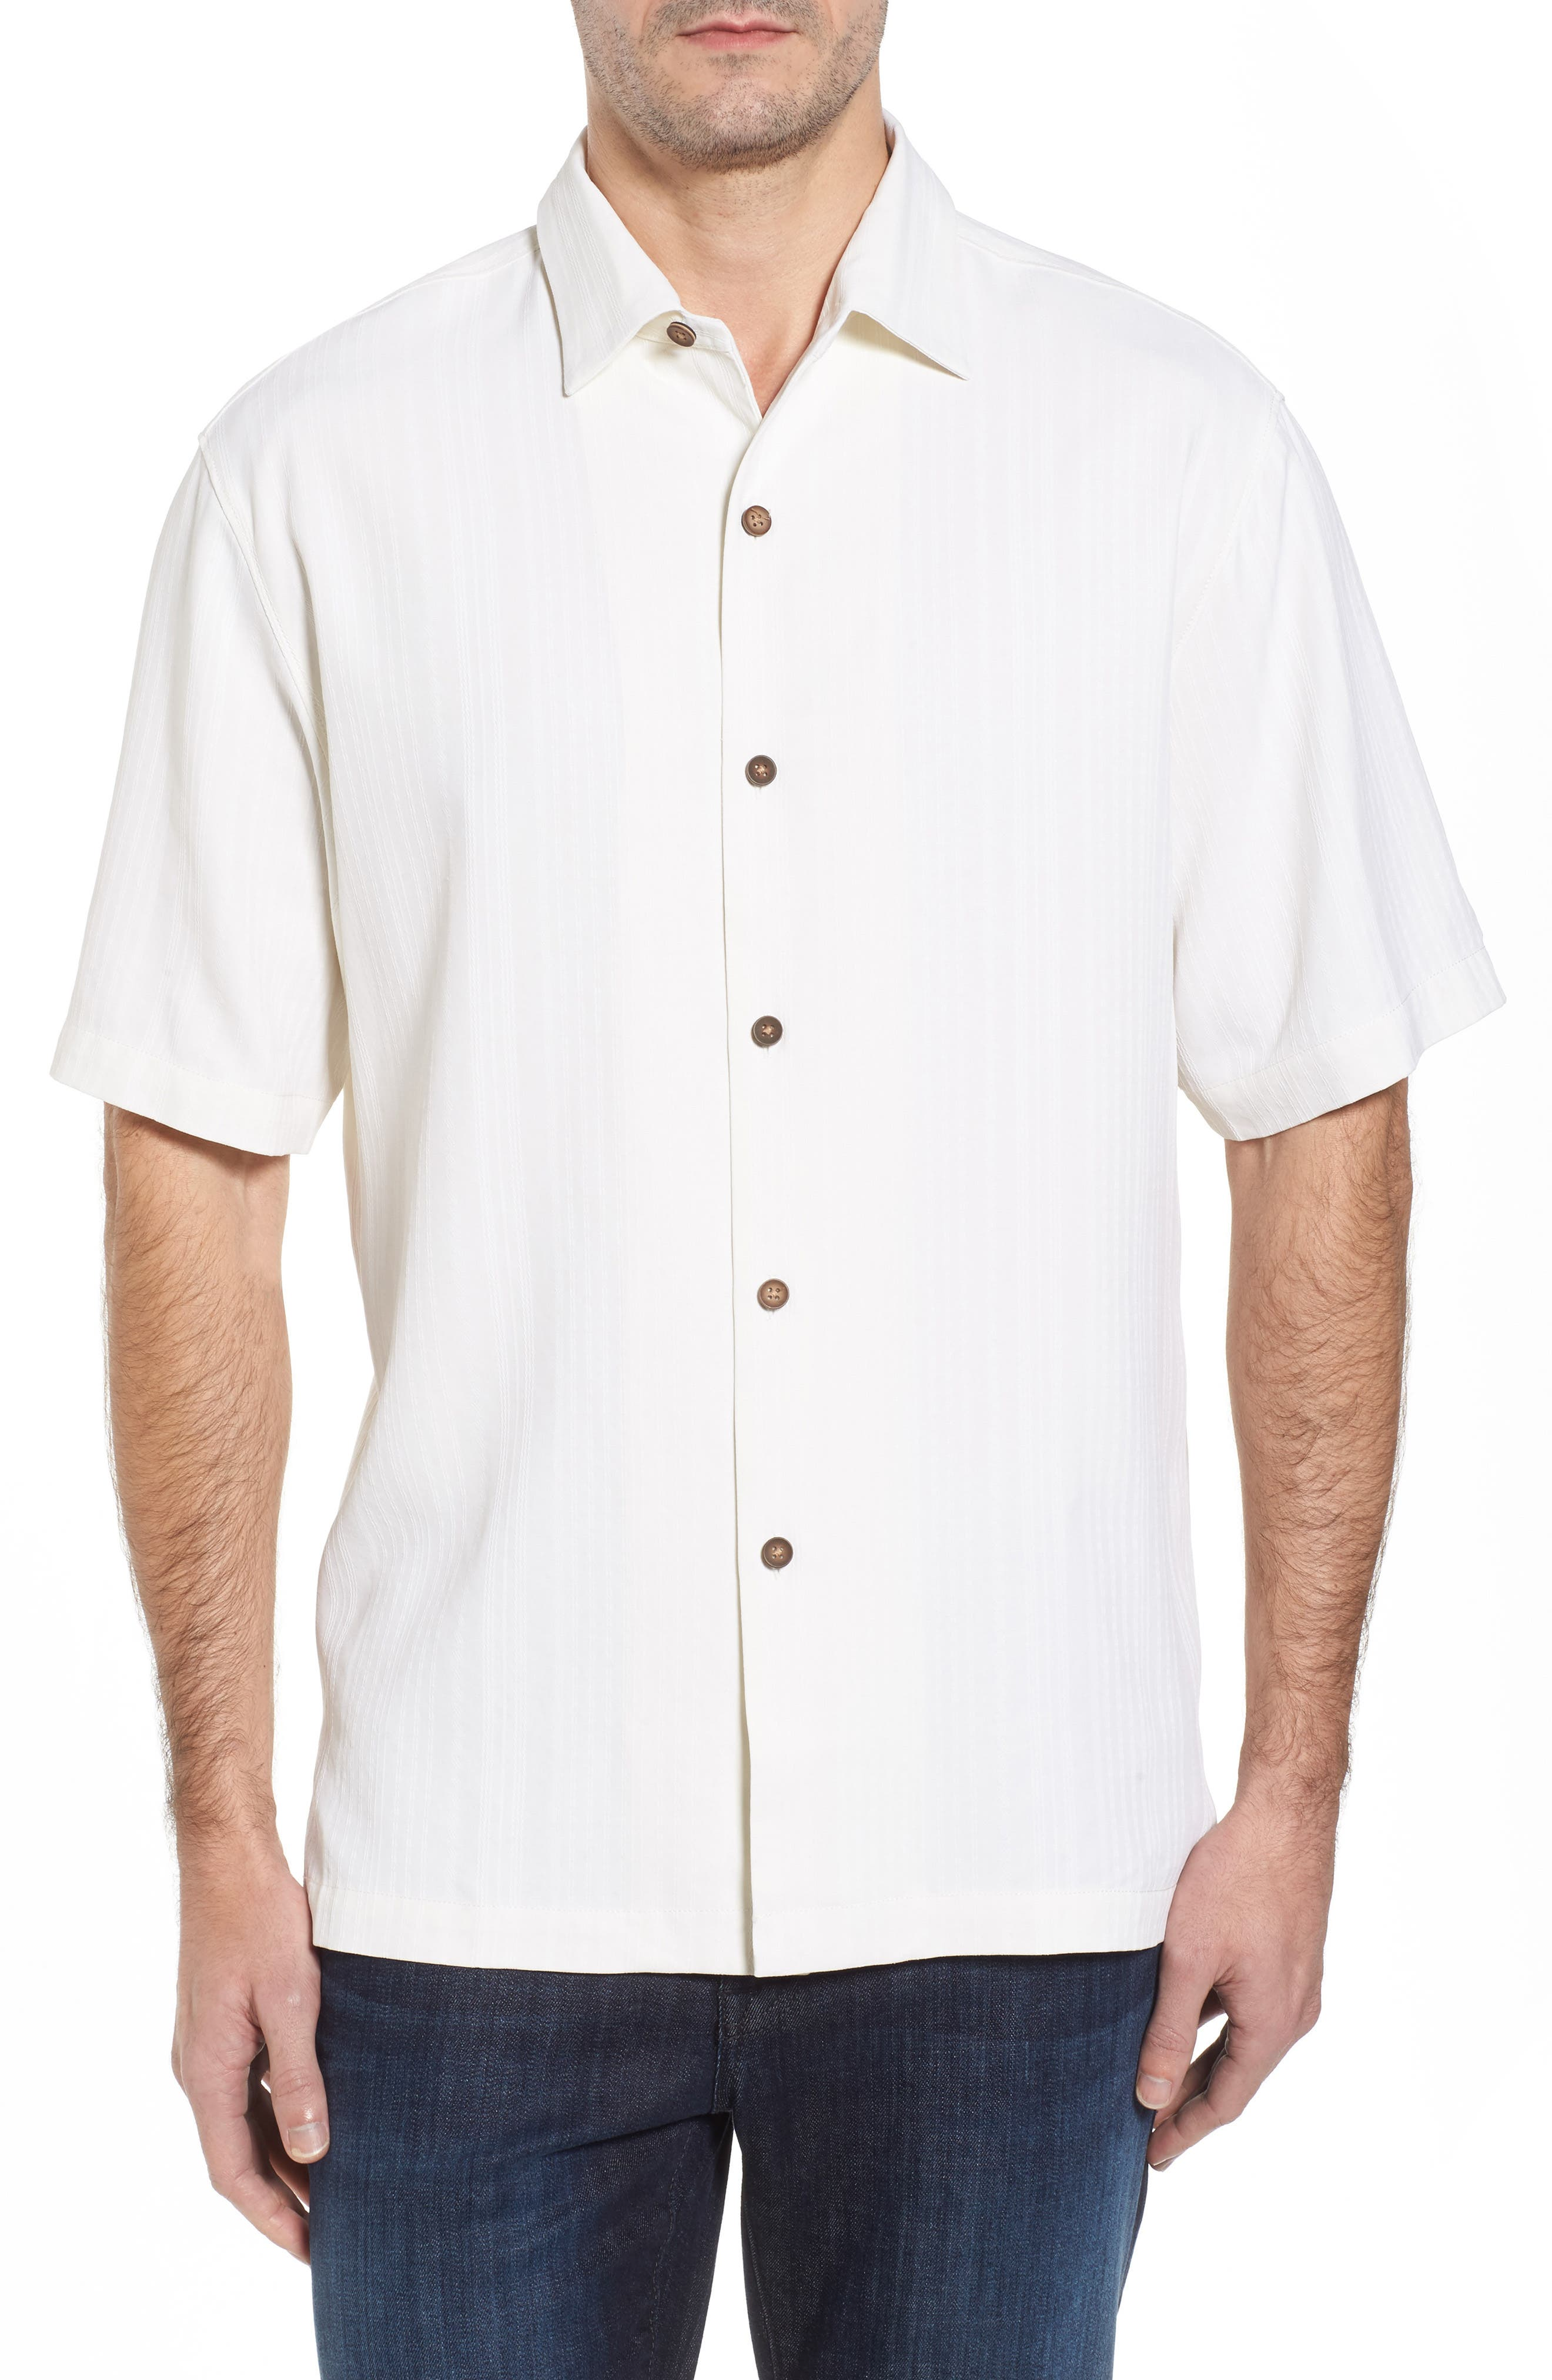 Alternate Image 1 Selected - Tommy Bahama Paradise Fairway Silk Camp Shirt